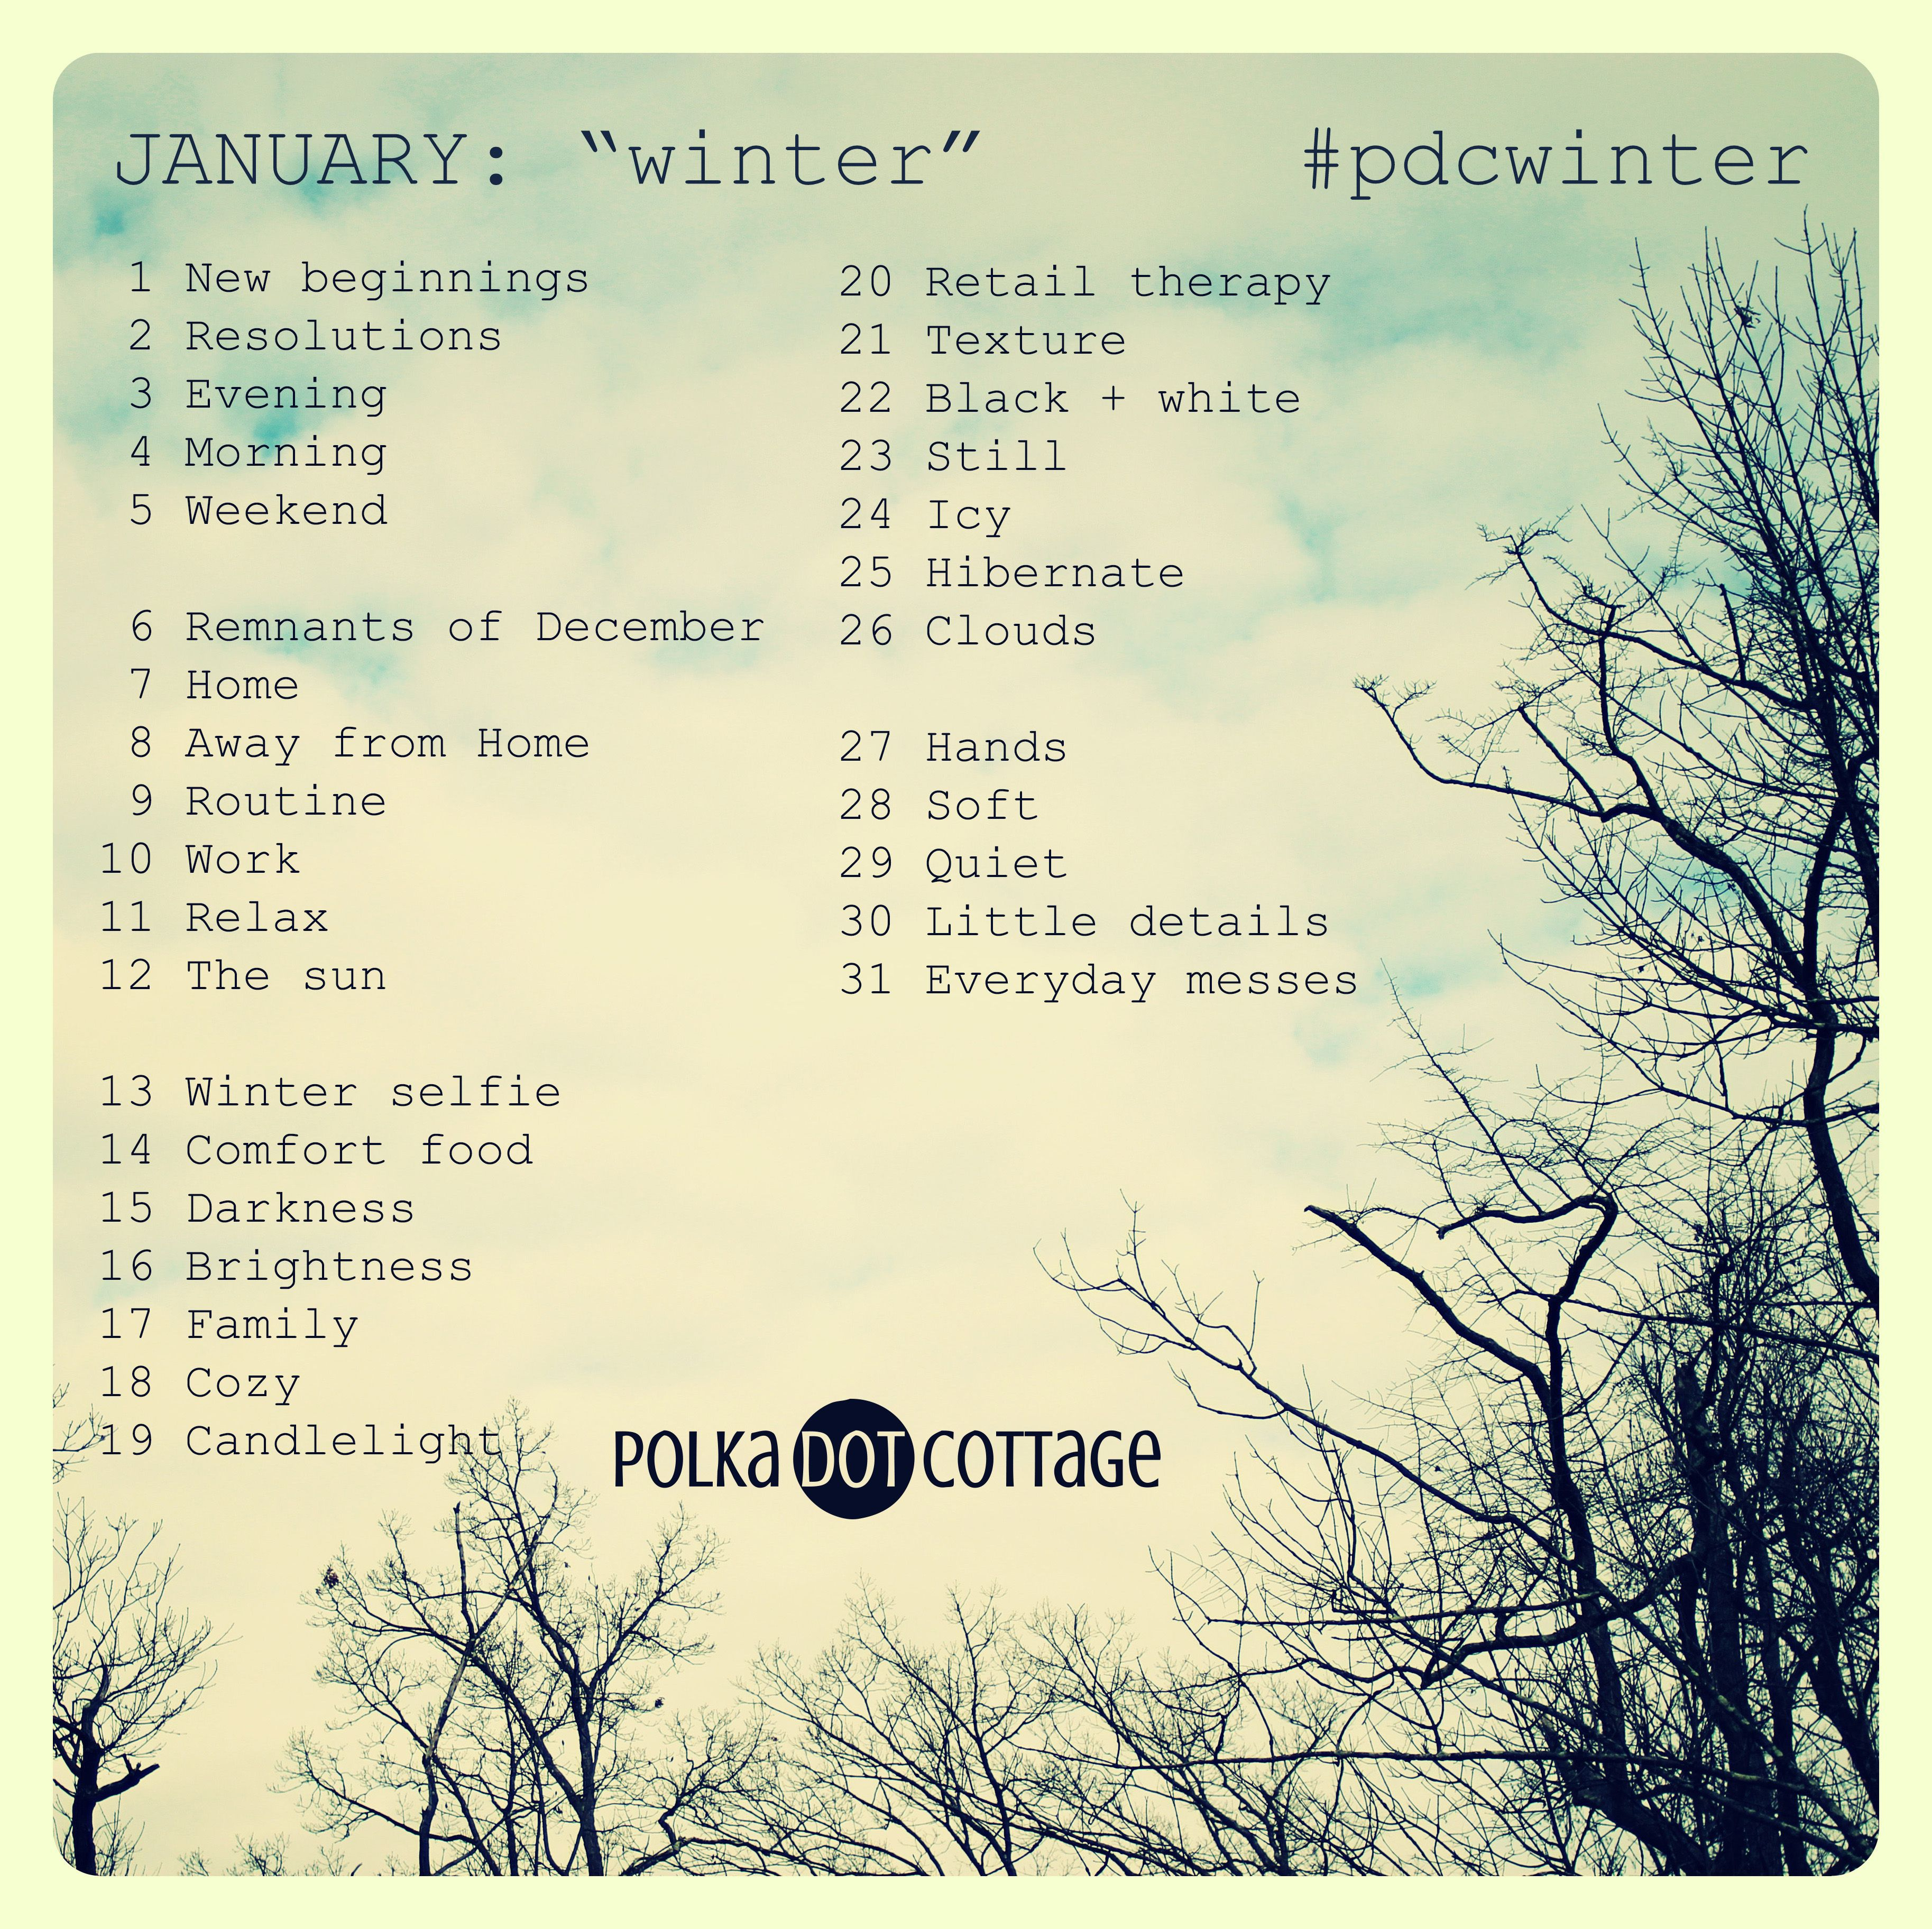 Polka Dot Cottage photo prompts for January 2014. Theme: Winter! Hashtag #pdcwinter